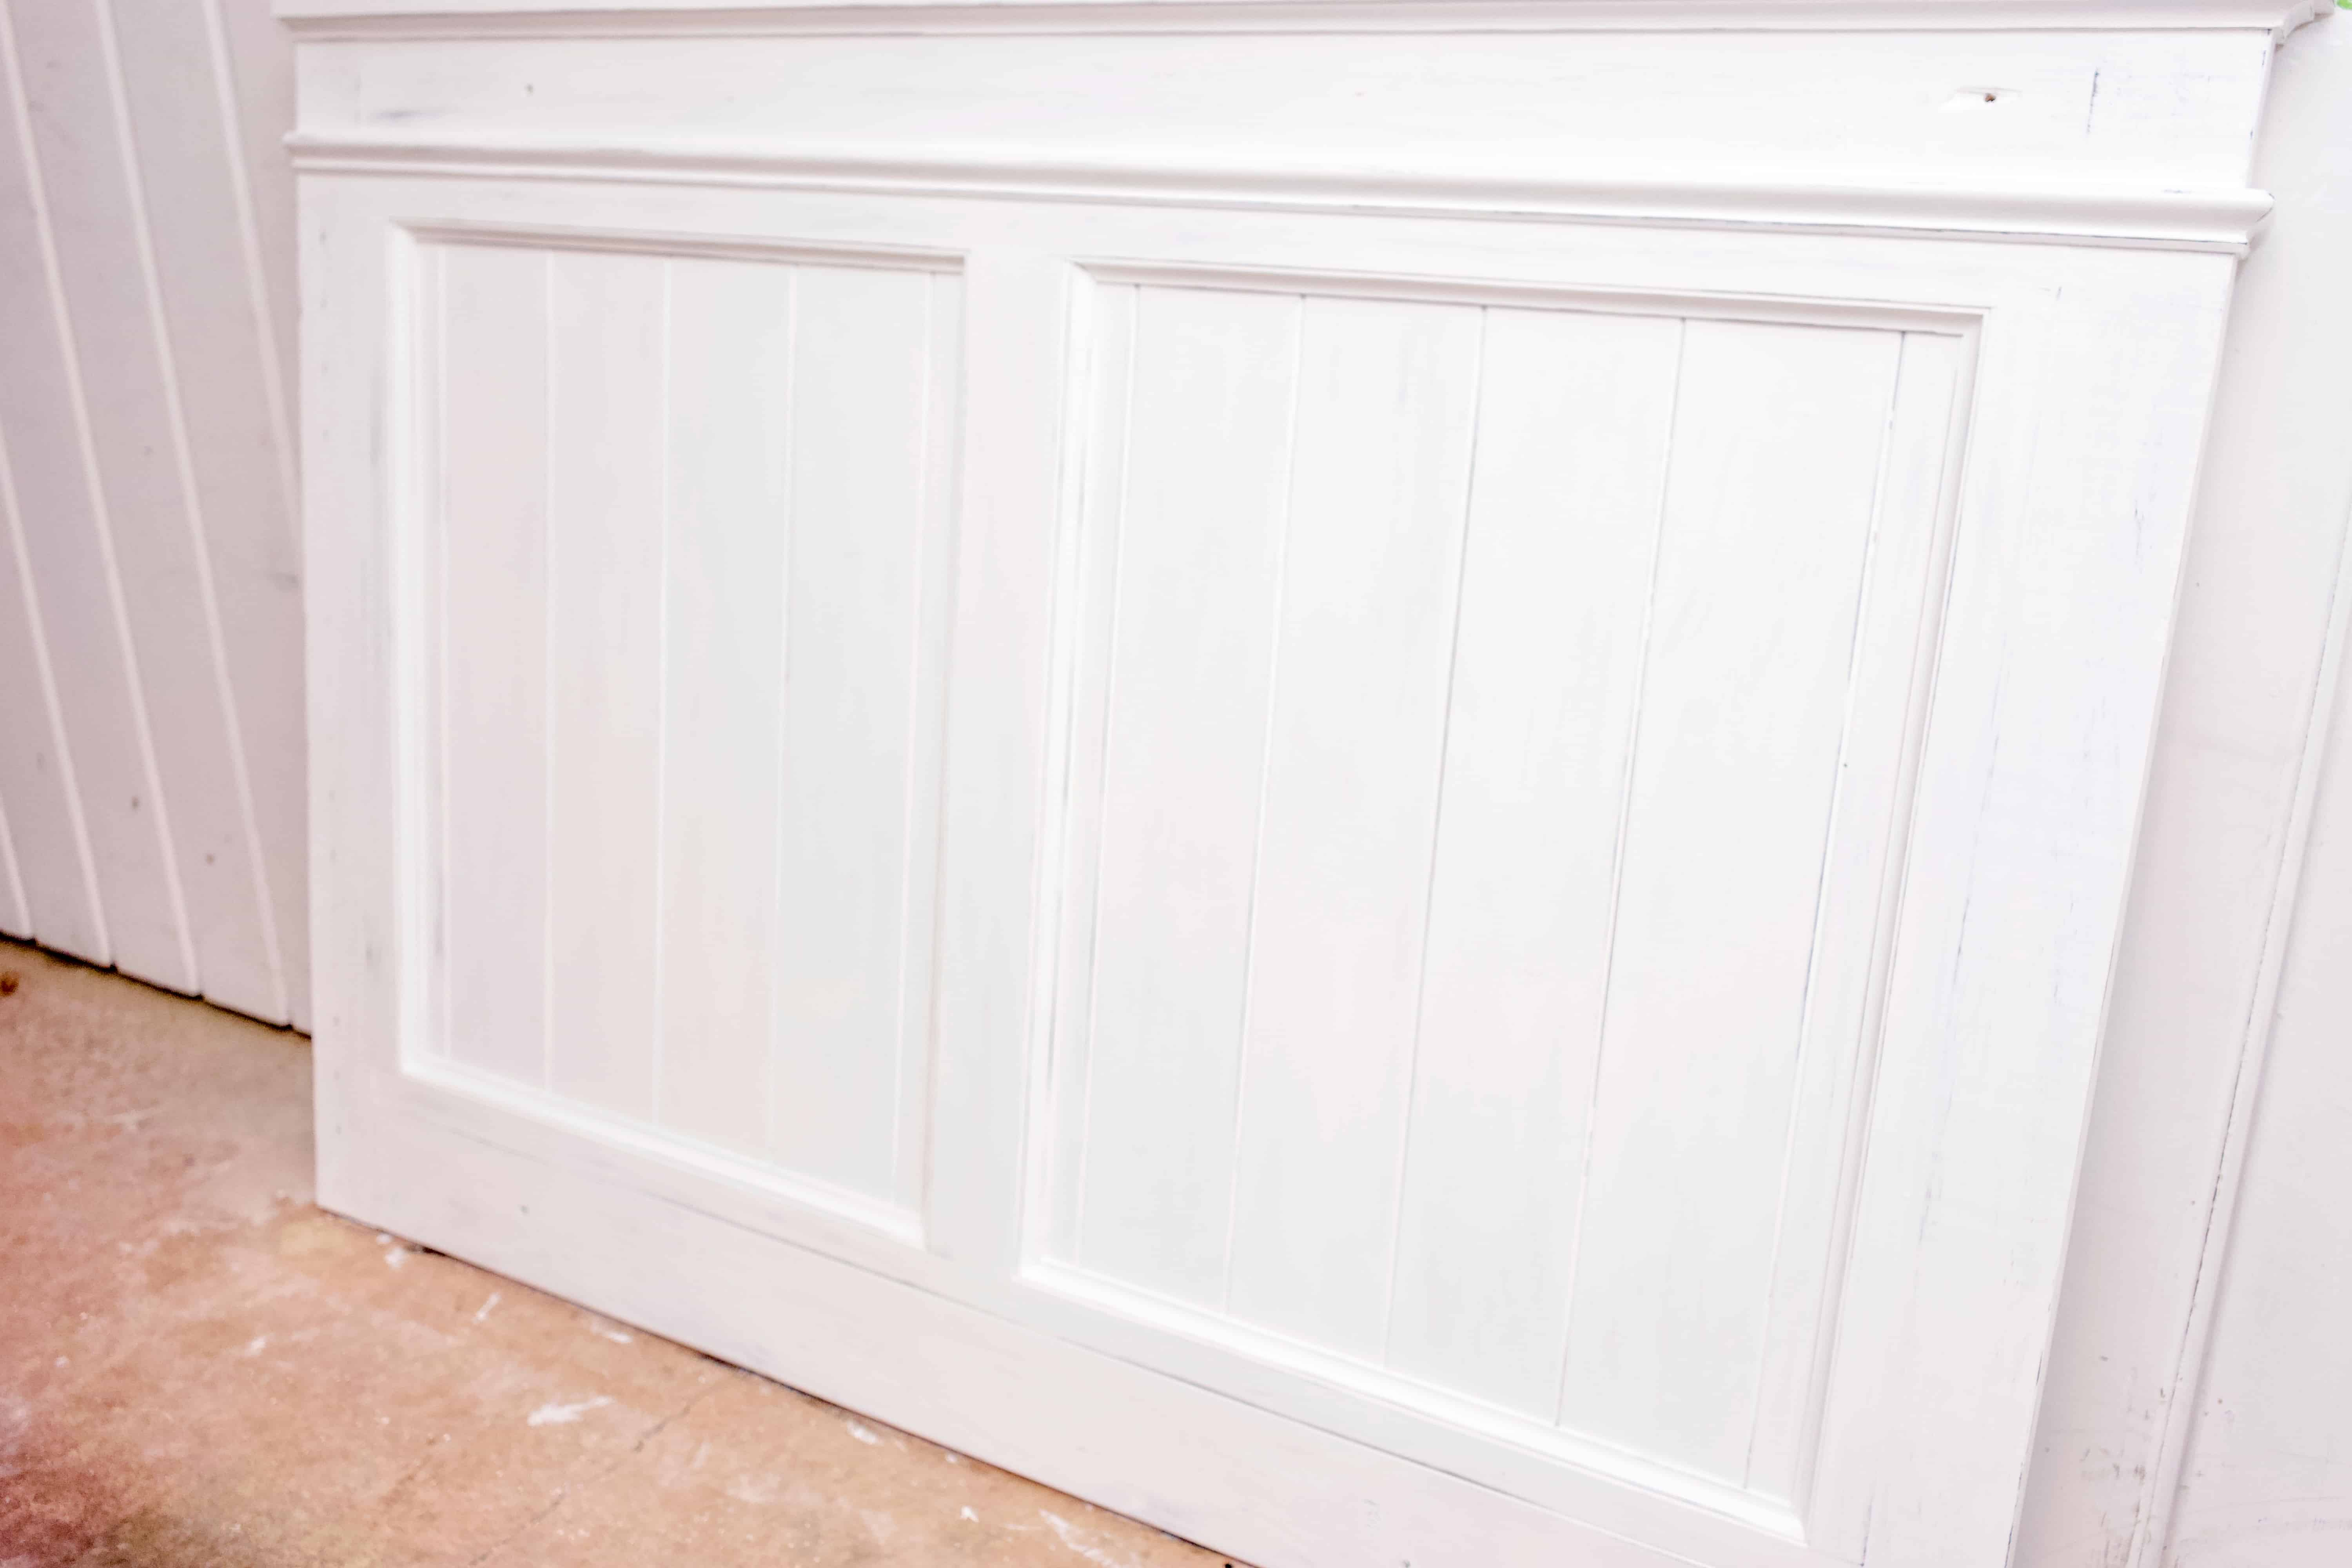 Here's a step-by-step tutorial on how to chalk paint and distress furniture. It's a fairly easy process that can make a big difference!